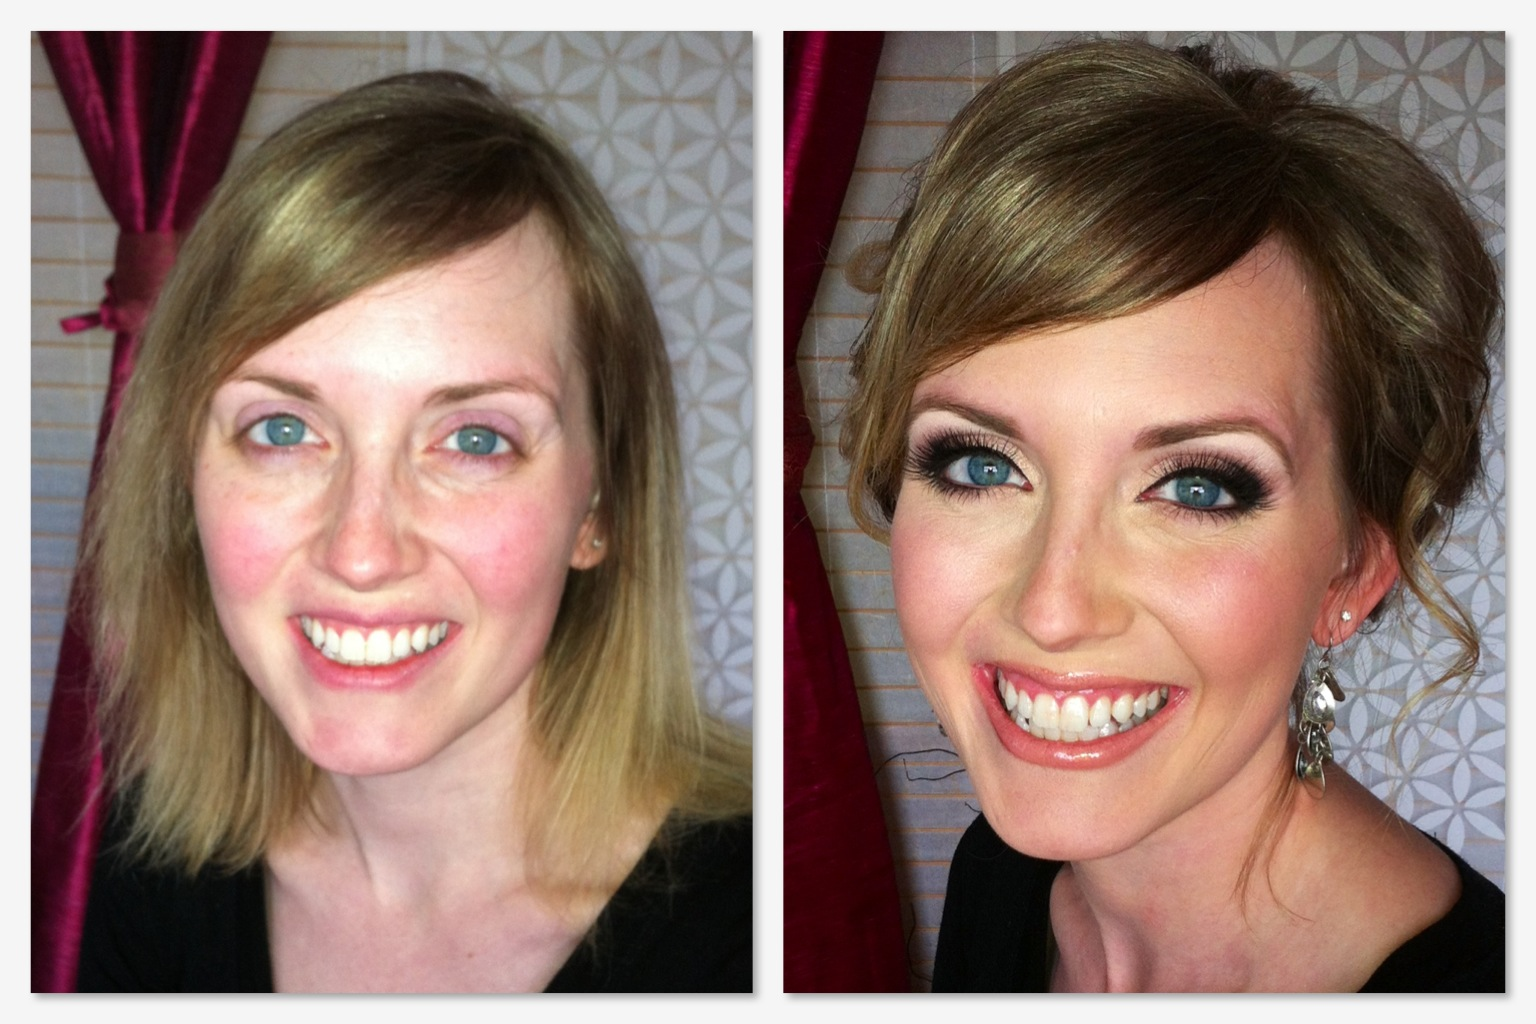 moon face steroid use